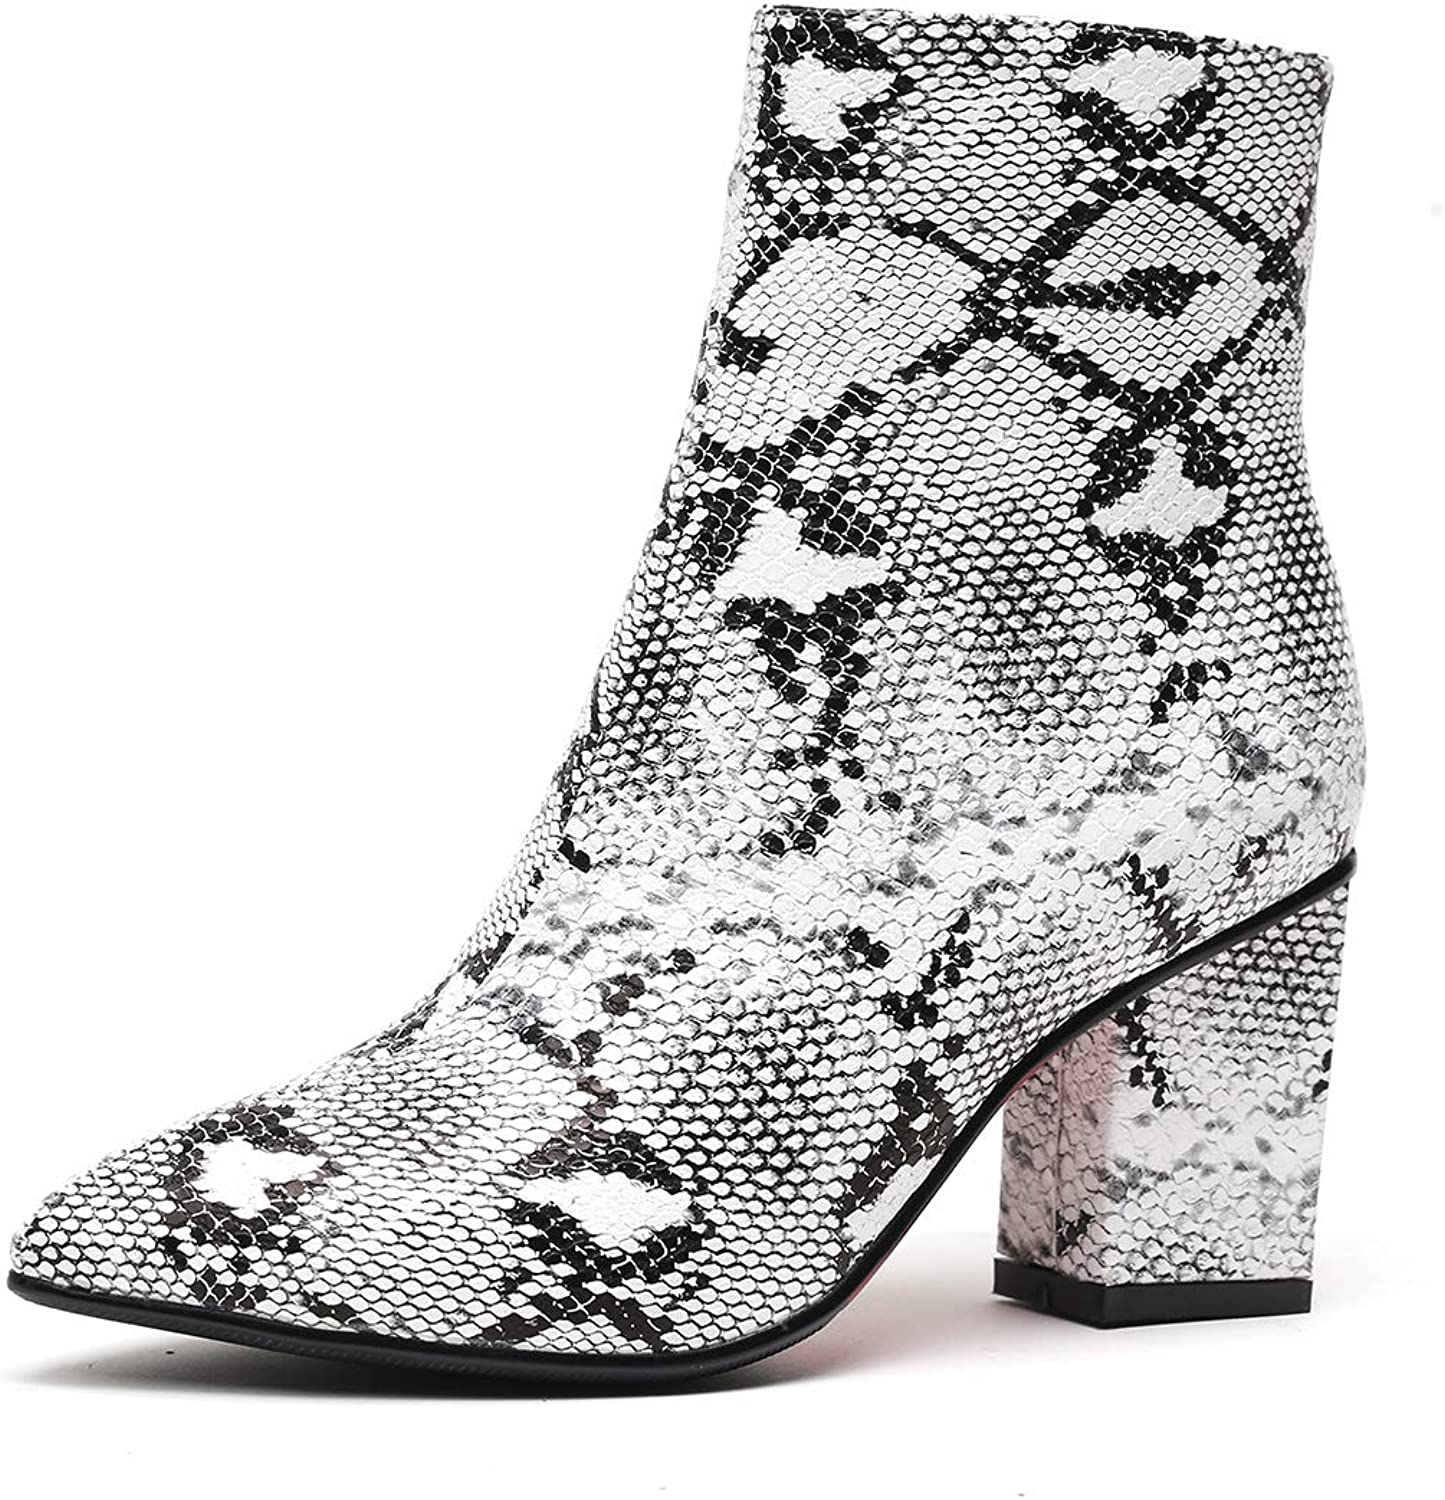 SHOWADAY Women's Ankle Boots Snakeskin Print Chunky Heel Faux Fur Winter Bootie